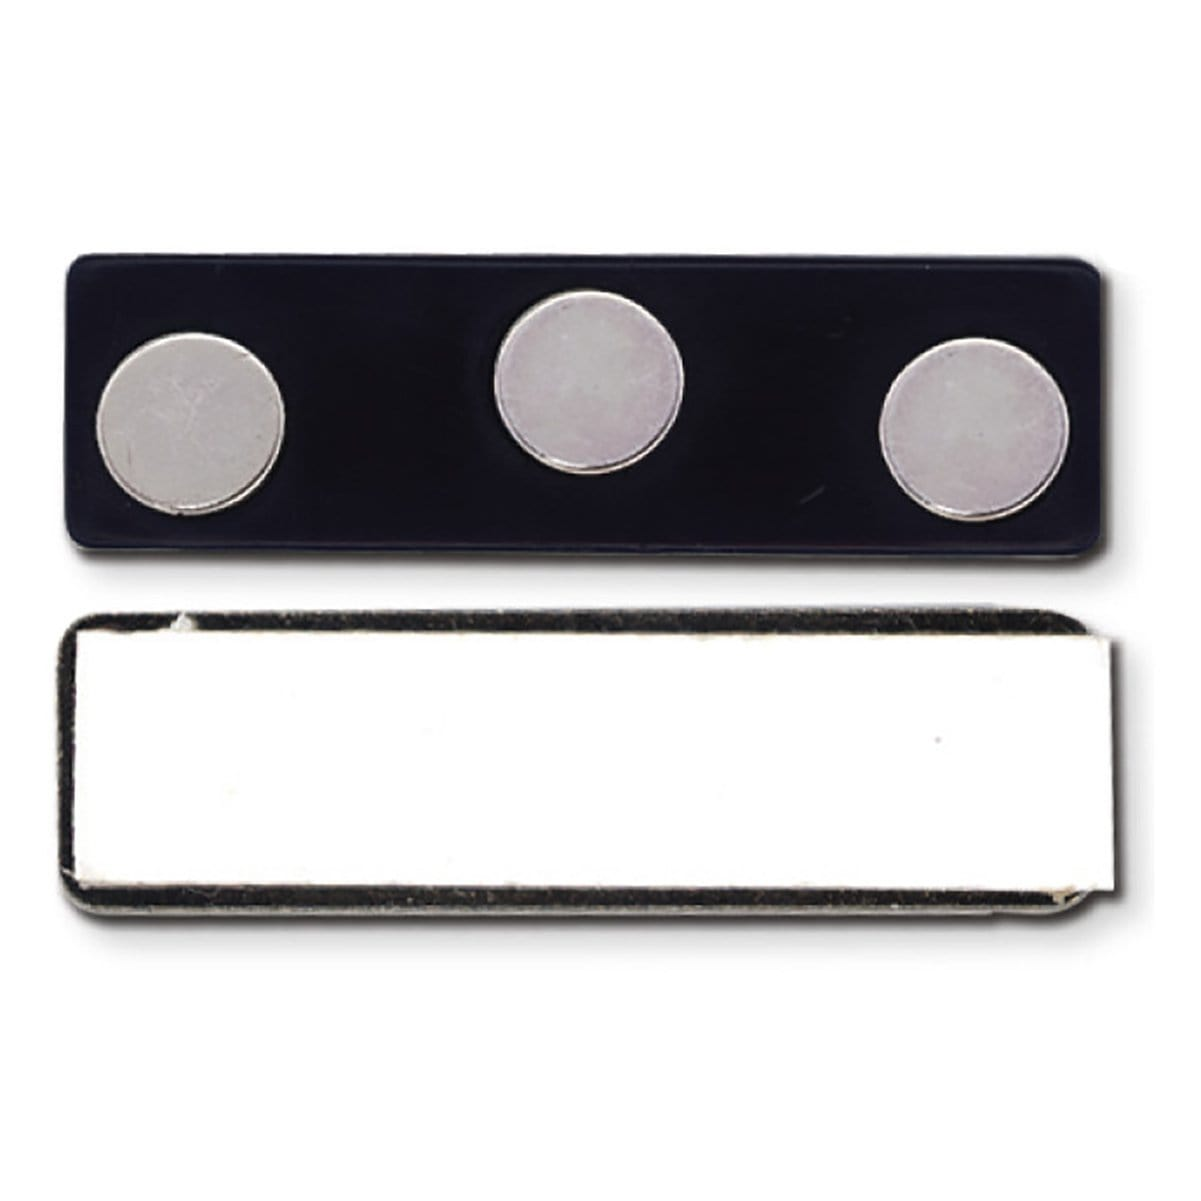 Magnetic Badge Finding, 3 Round Magnets (P/N 5730-3040)